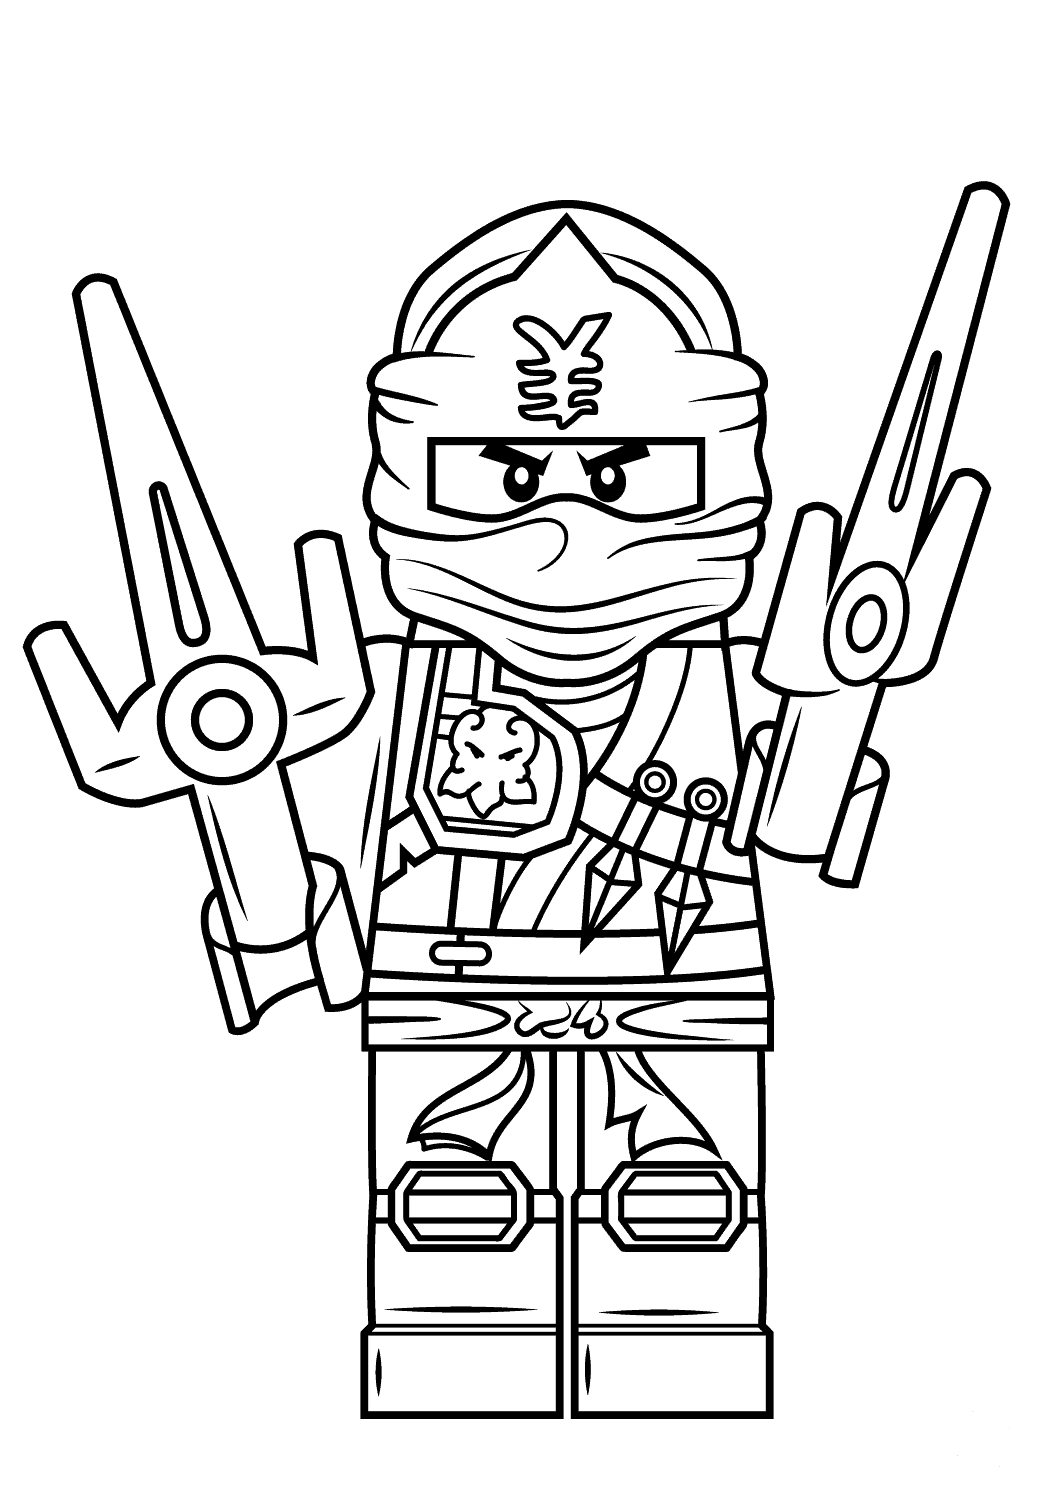 ninjago coloring pages jay ninjago jay coloring pages quickly usage educative printable jay pages coloring ninjago